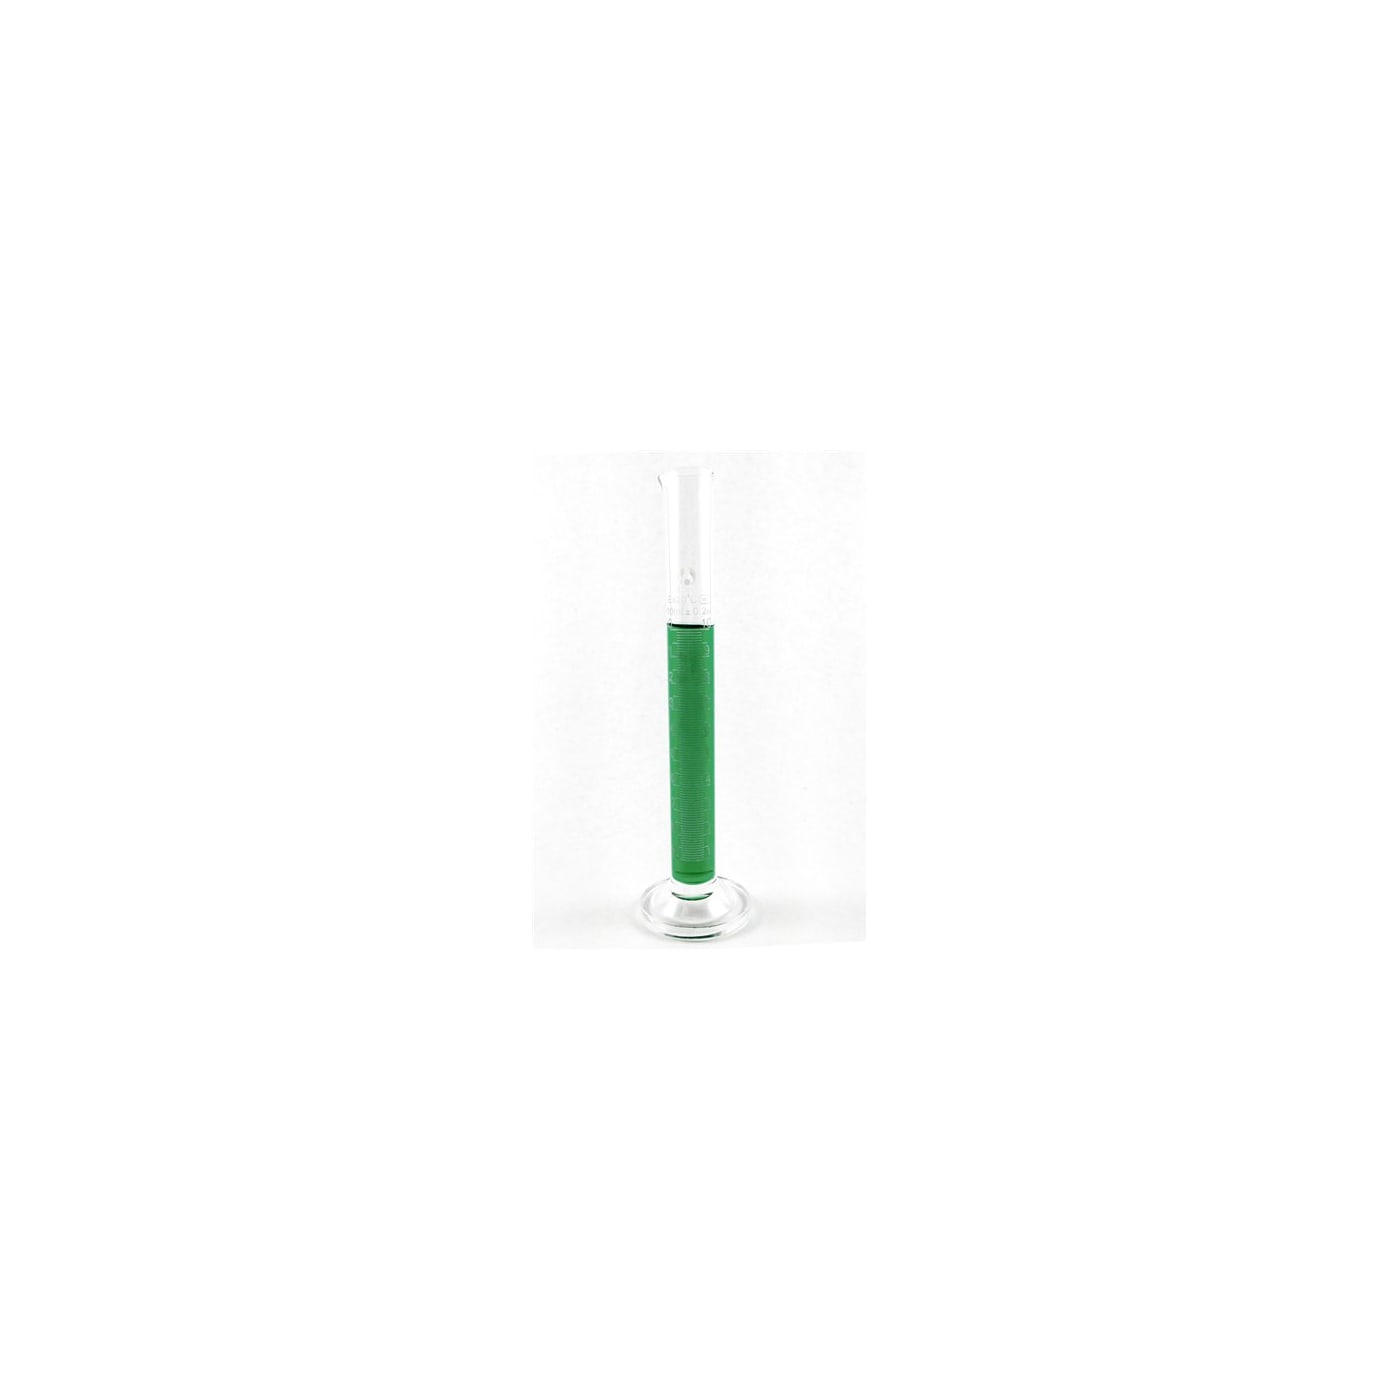 Graduated Cylinder 25 mL